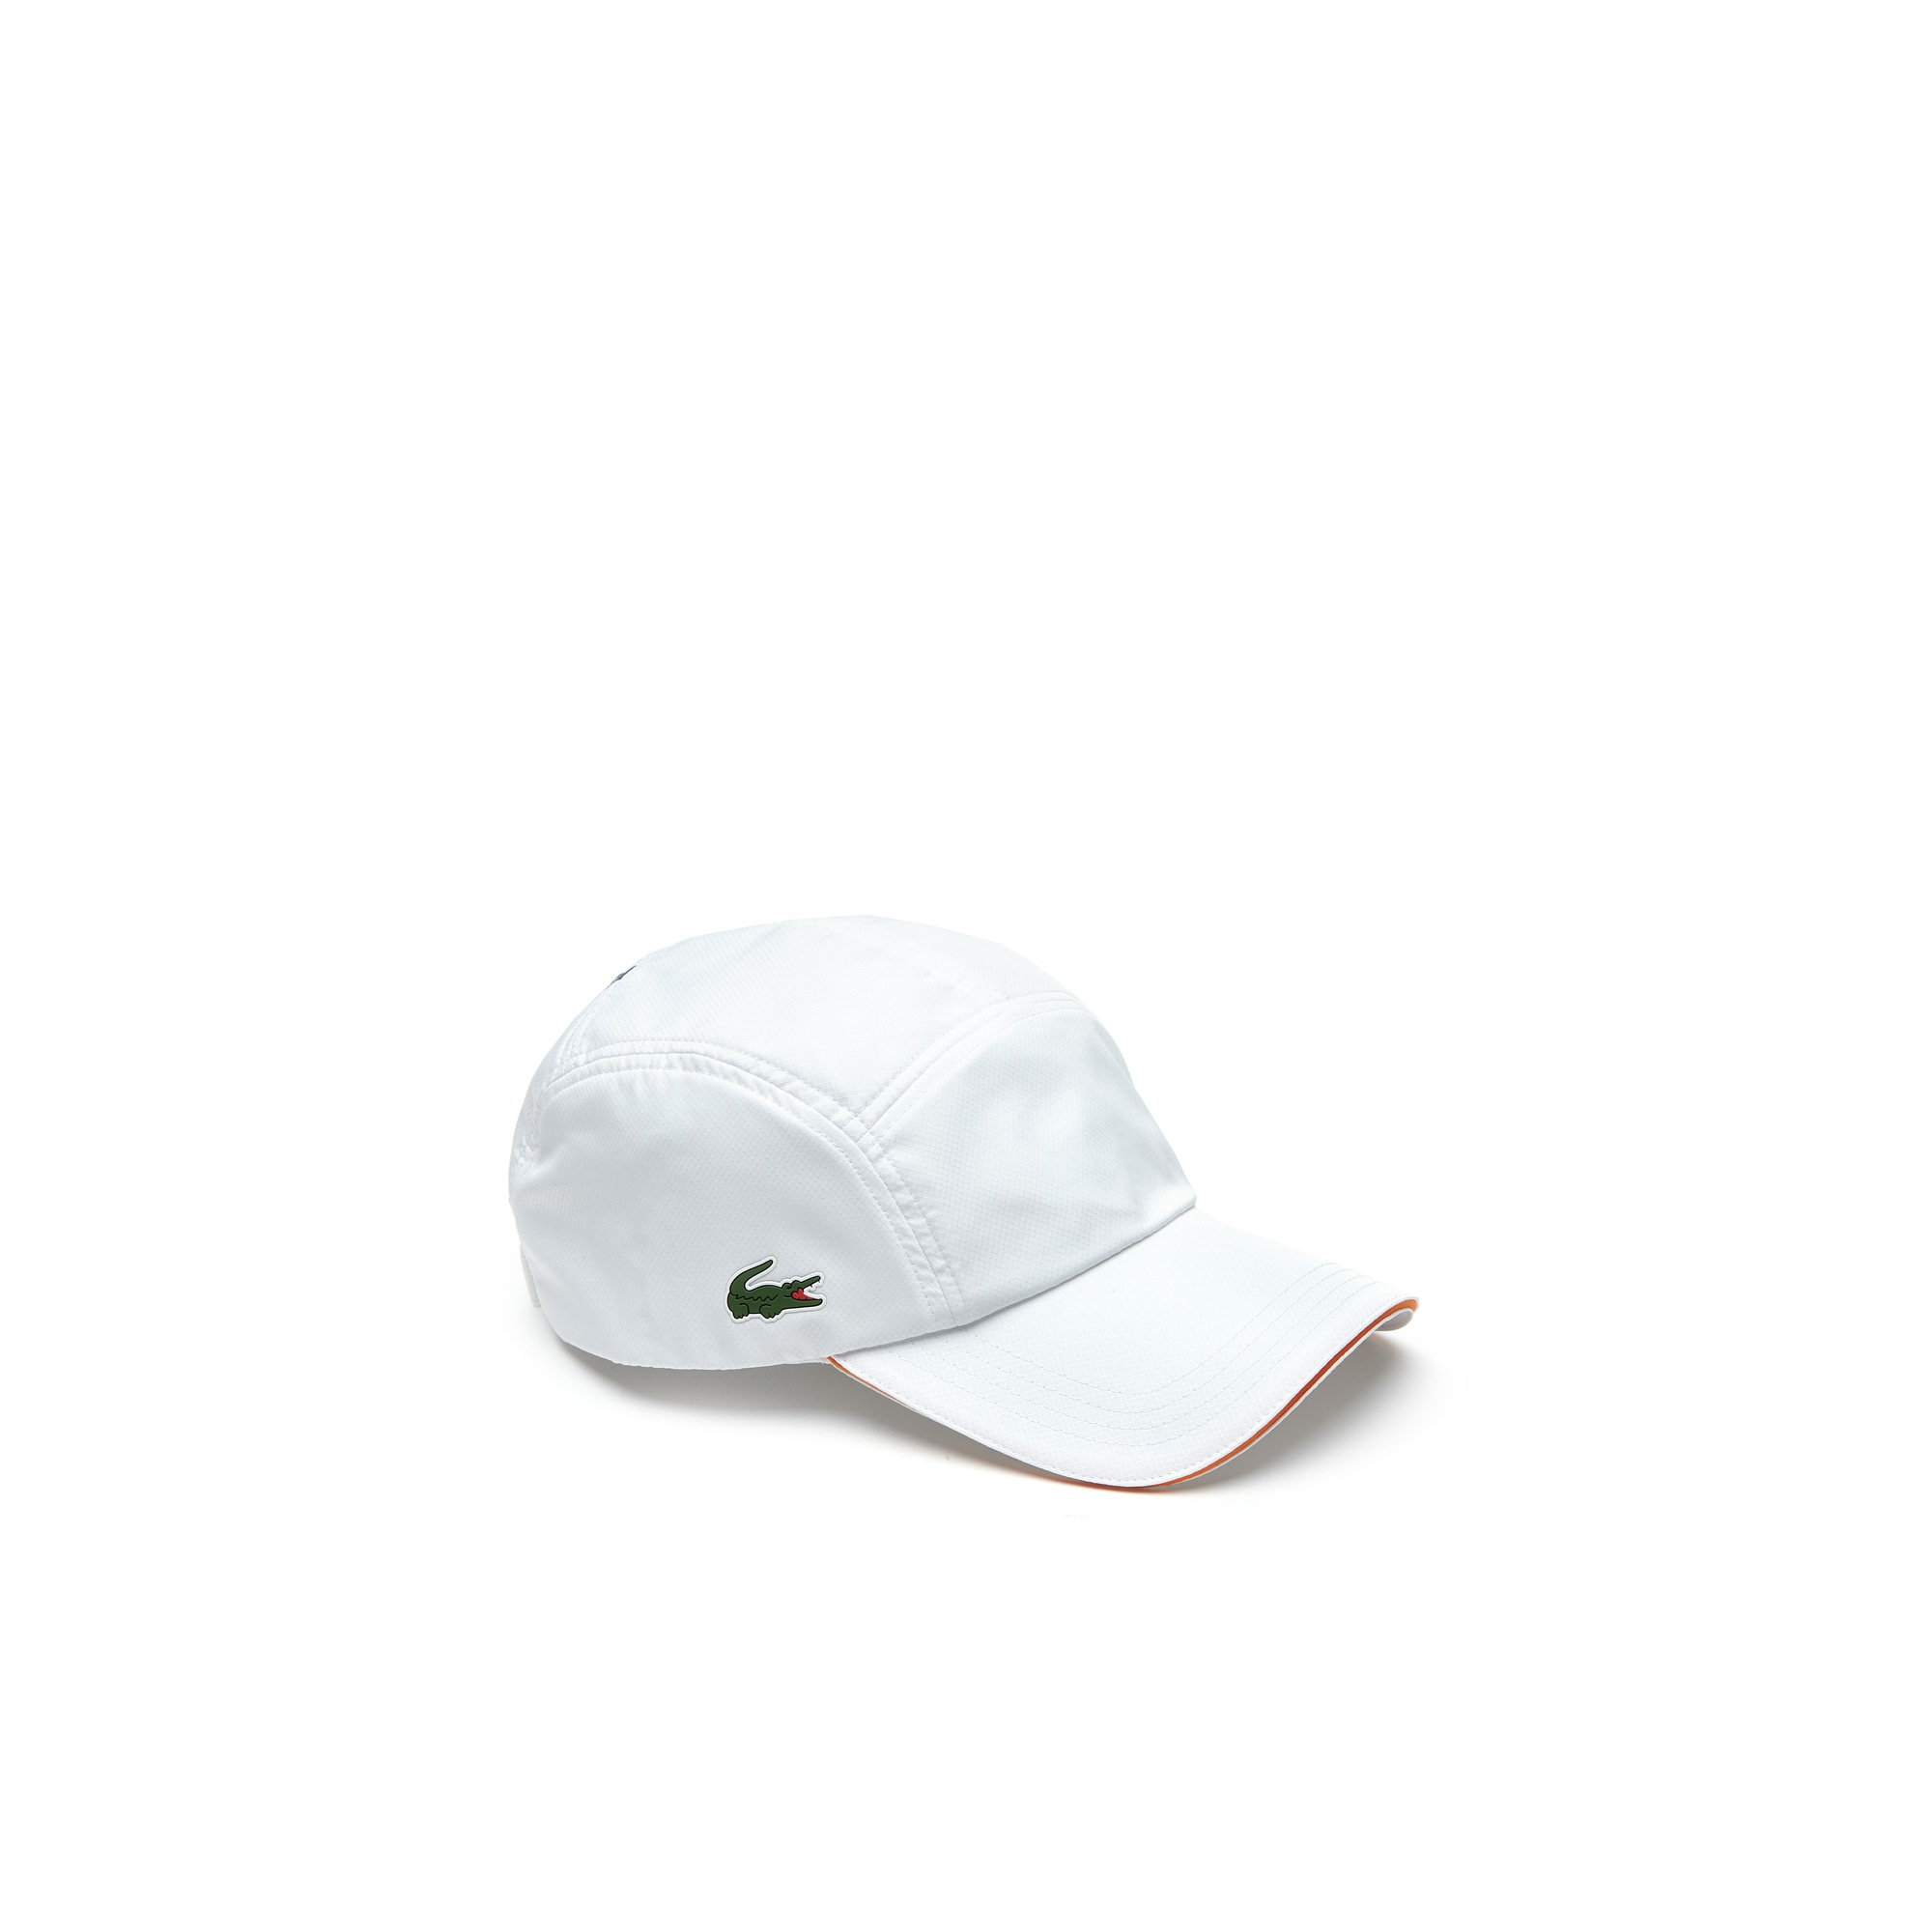 Men's SPORT Taffeta Tennis Cap